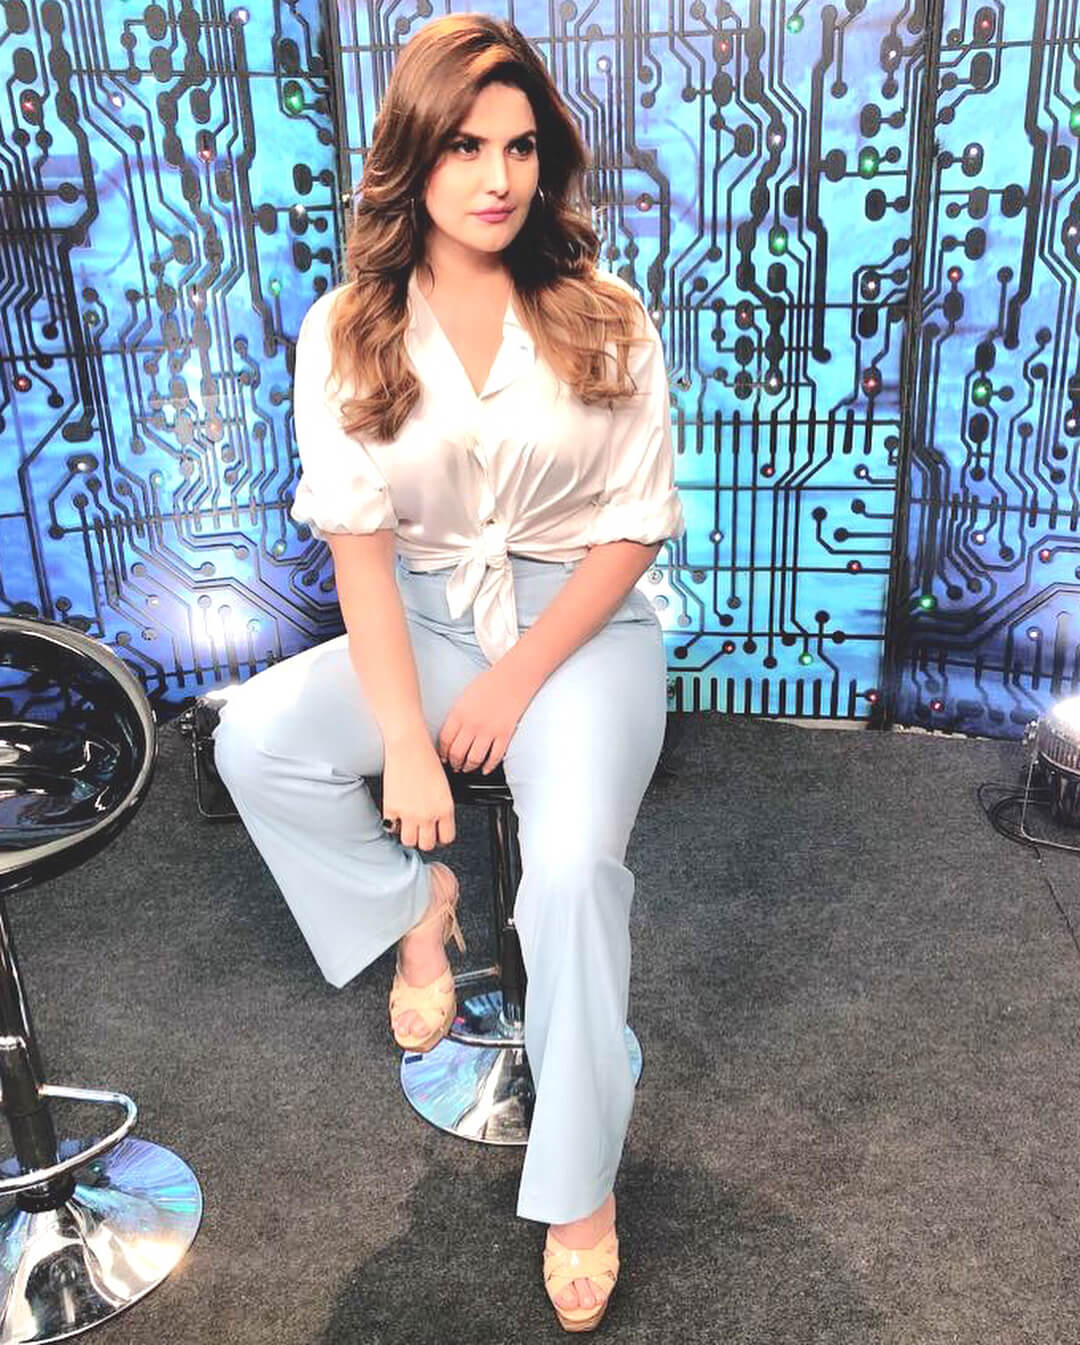 zareen khan awesome picture (2)